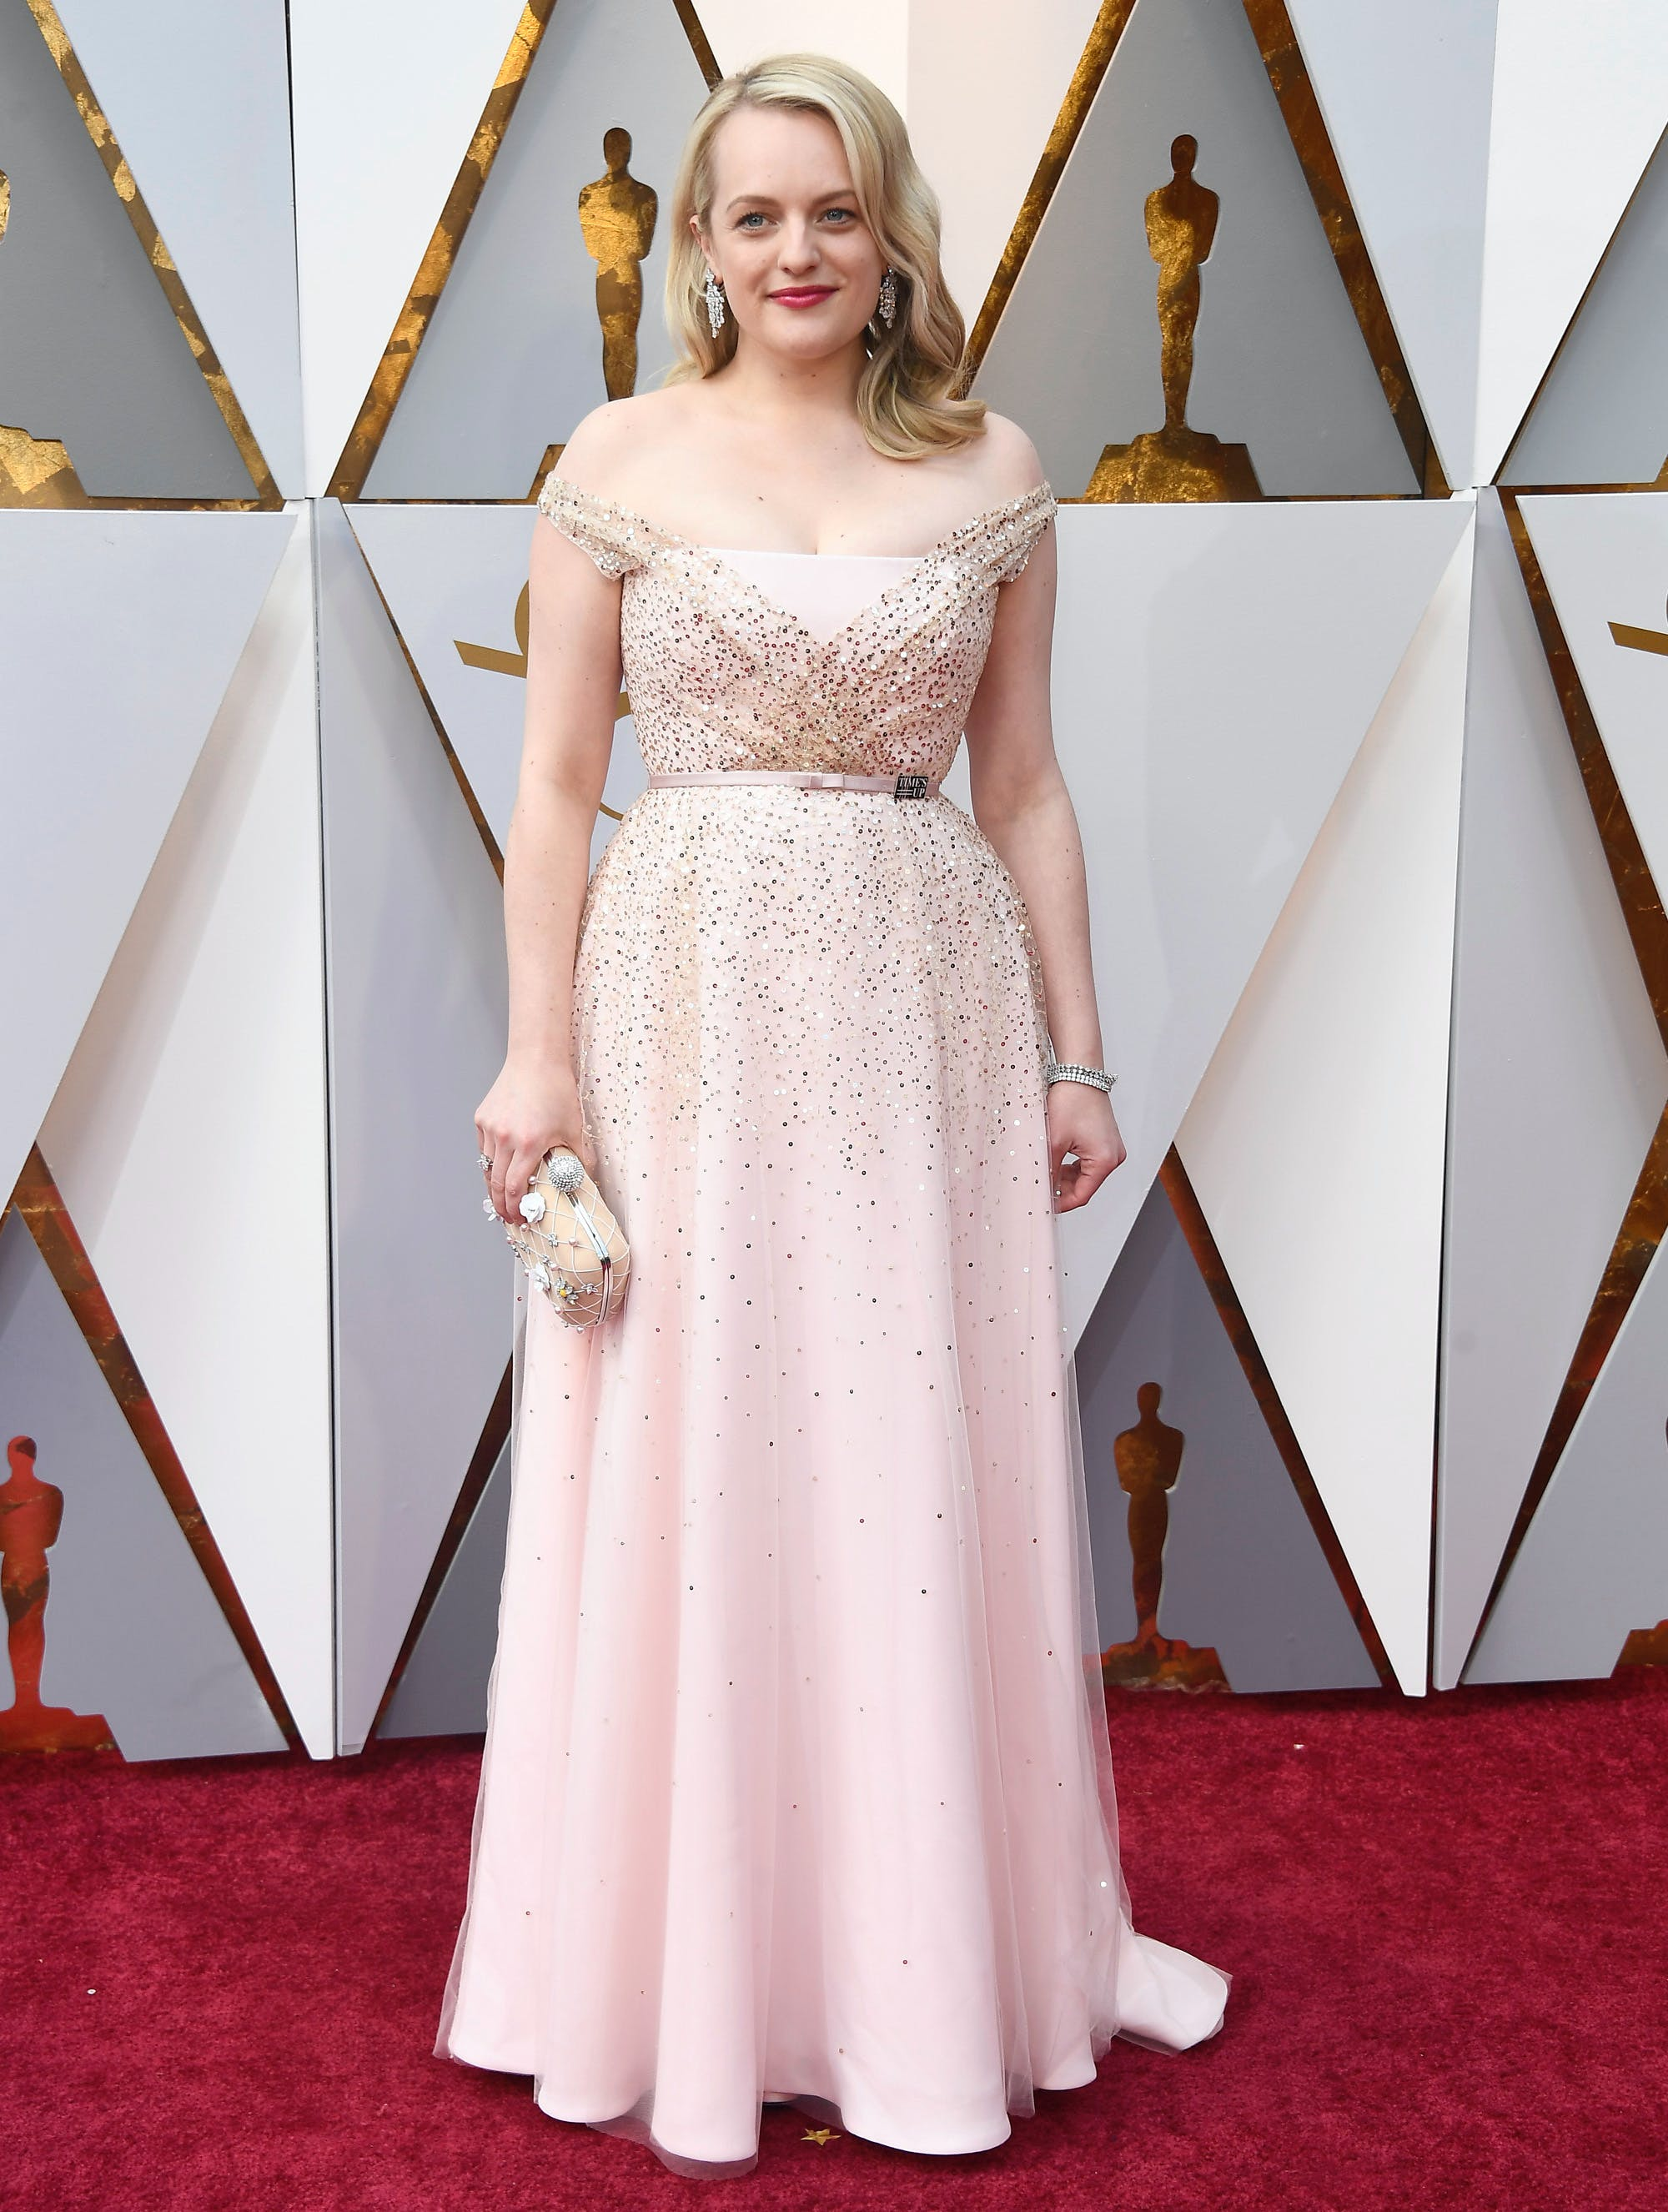 Elisabeth Moss at the 2018 Oscars